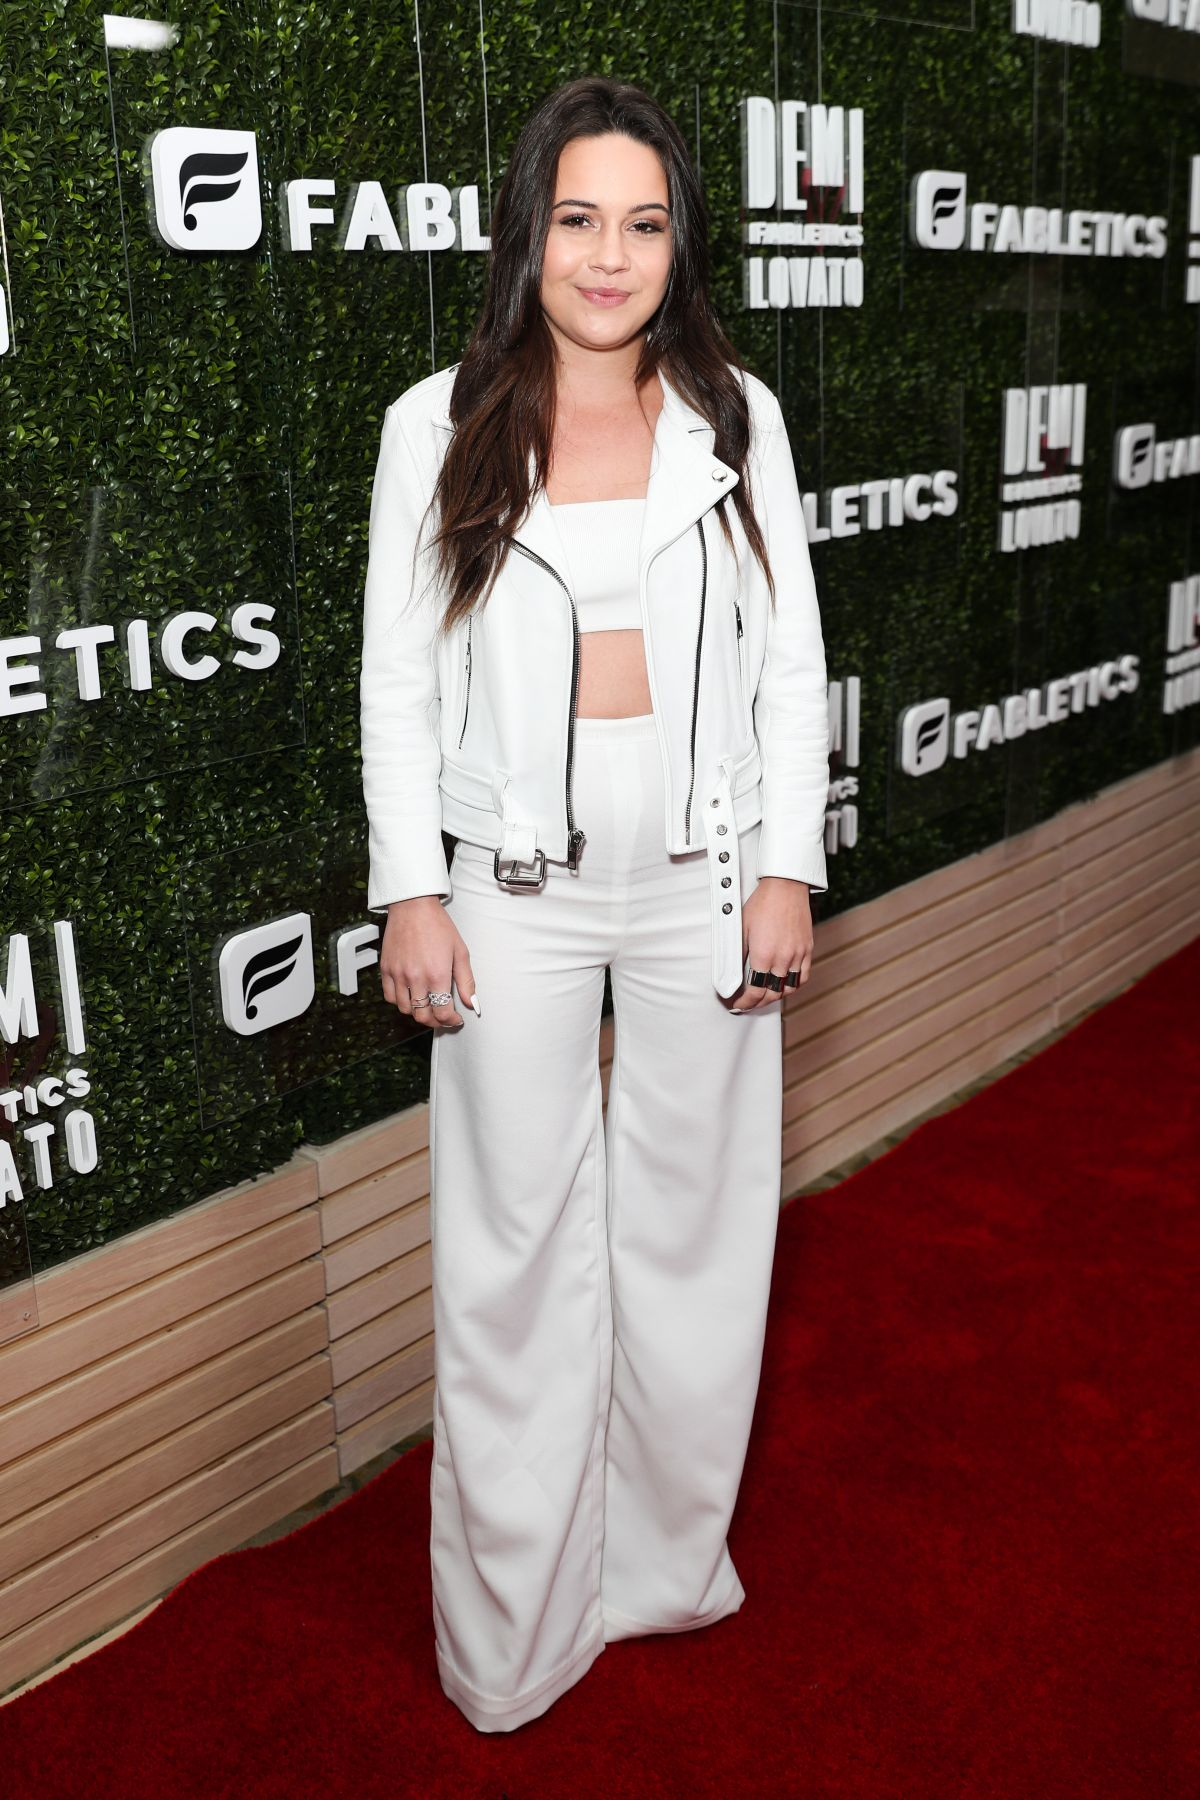 BEA MILLER at Demi Lovato for Fabletics Collaboration Launch in Beverly HIlls 05/10/2017